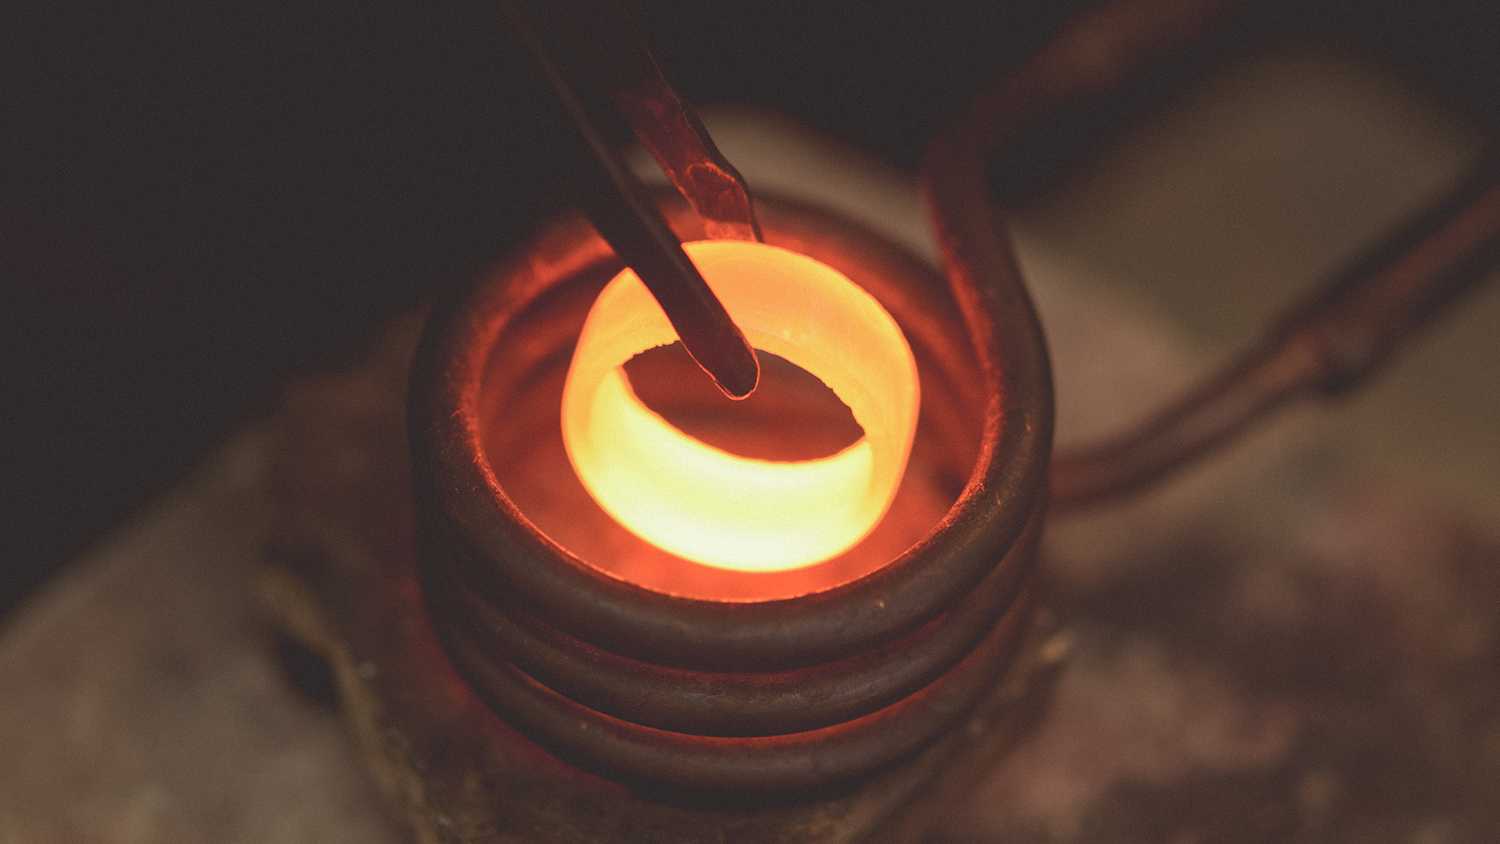 Heat treating a Damascus band to impart maximum corrosion resistance with our induction heater.